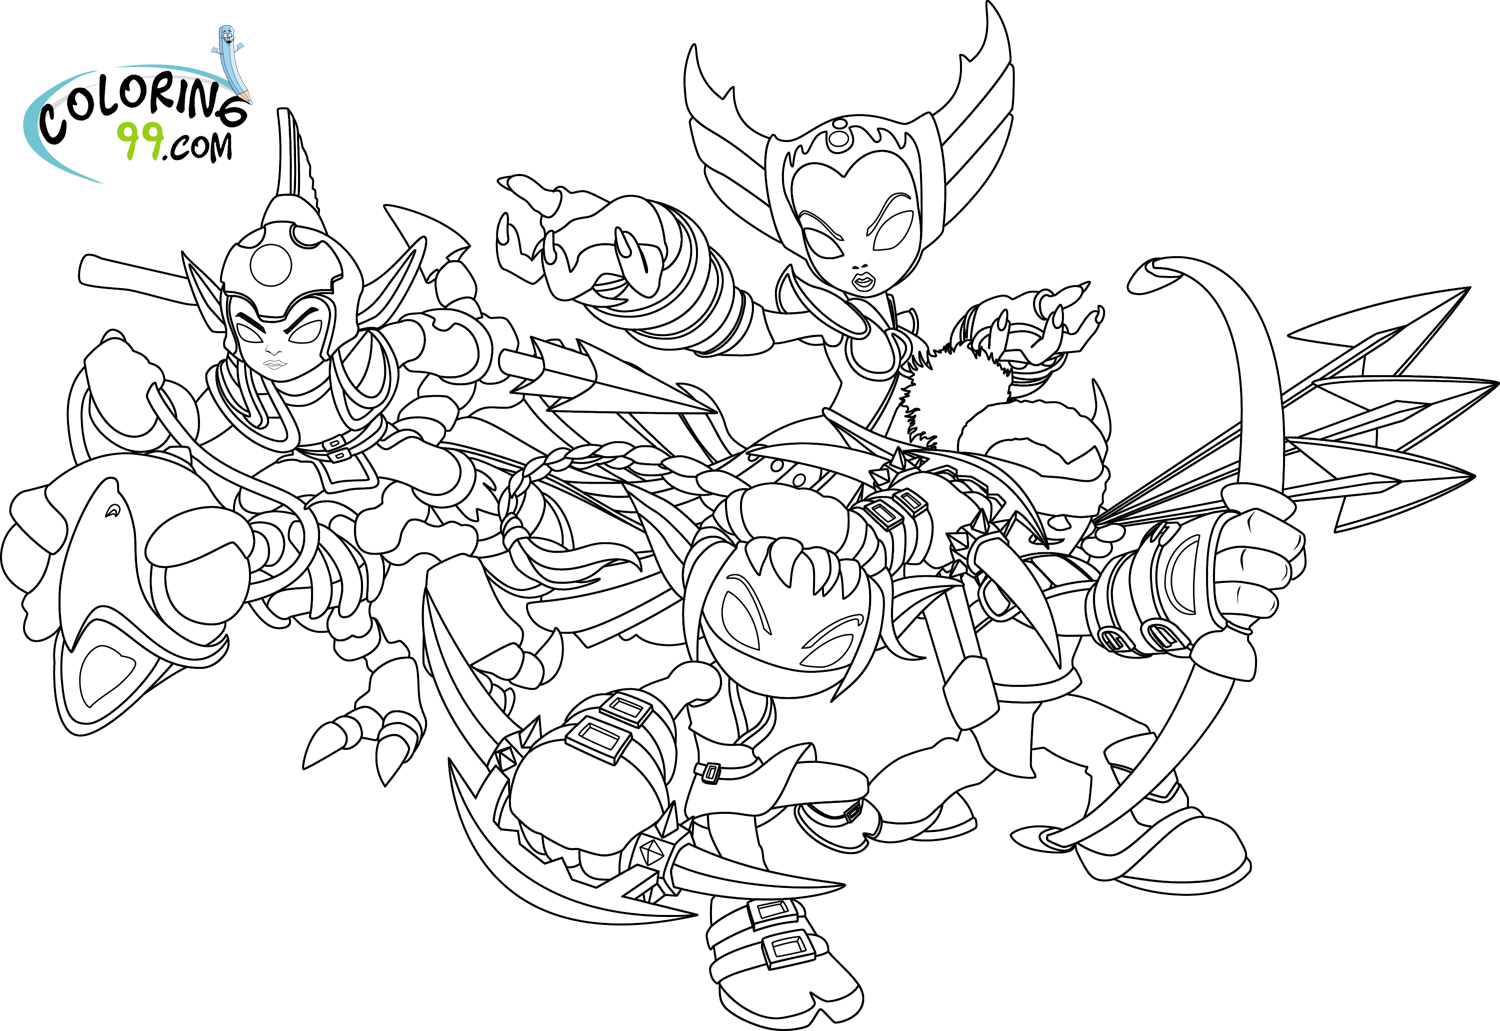 Flameslinger coloring pages ~ Skylanders Coloring Pages | Team colors